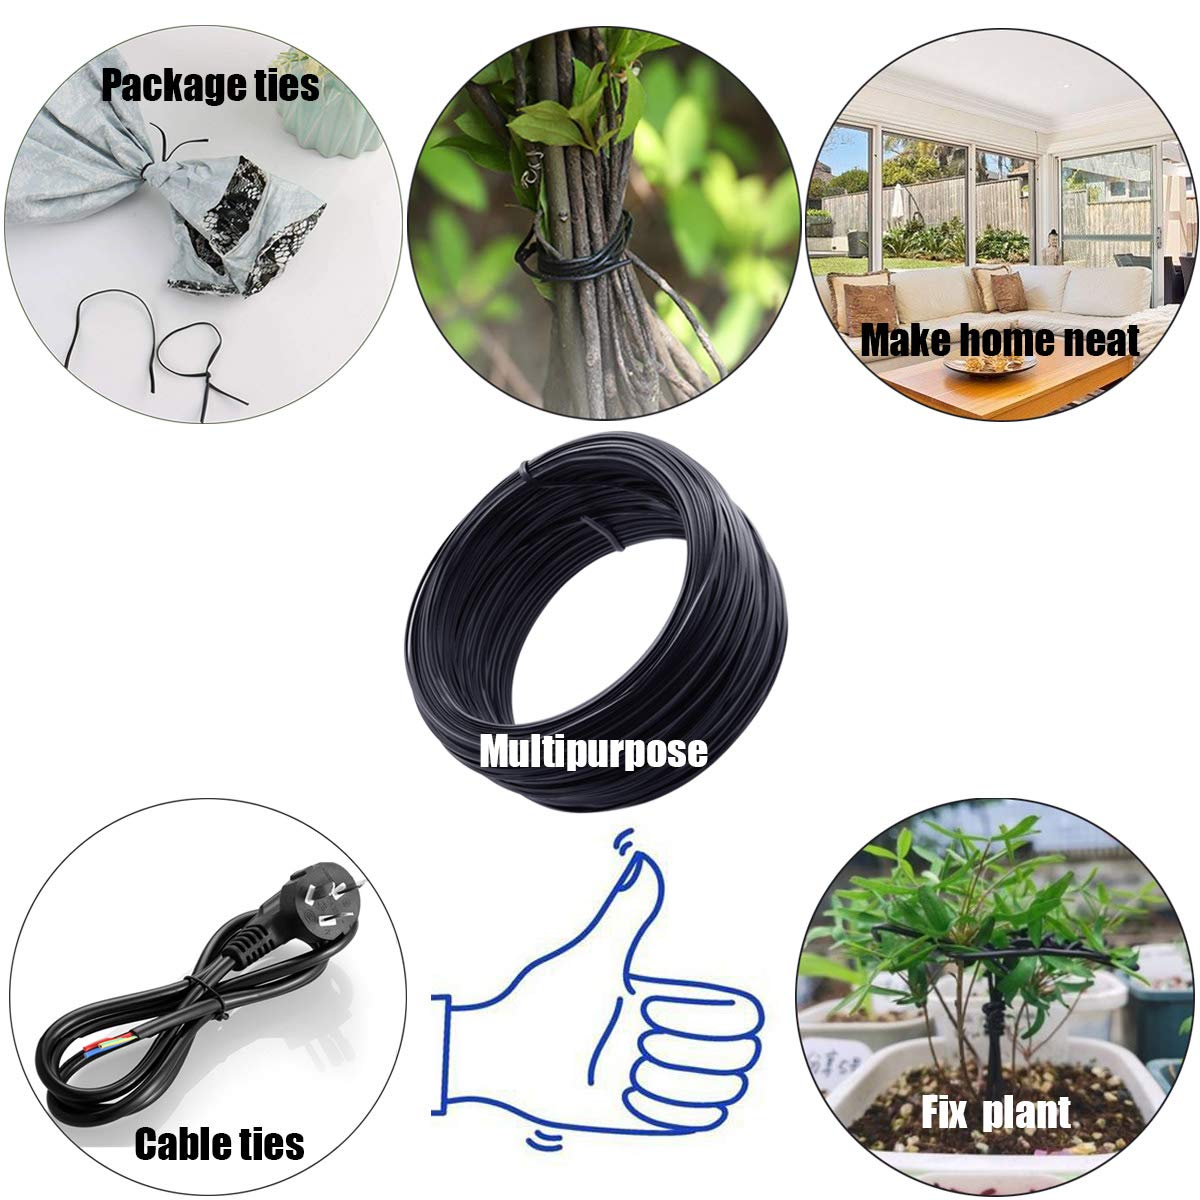 QY 230 Feet 0.75MM Diameter Metallic Twist Cable Garden Ties Reusable Fastening Black